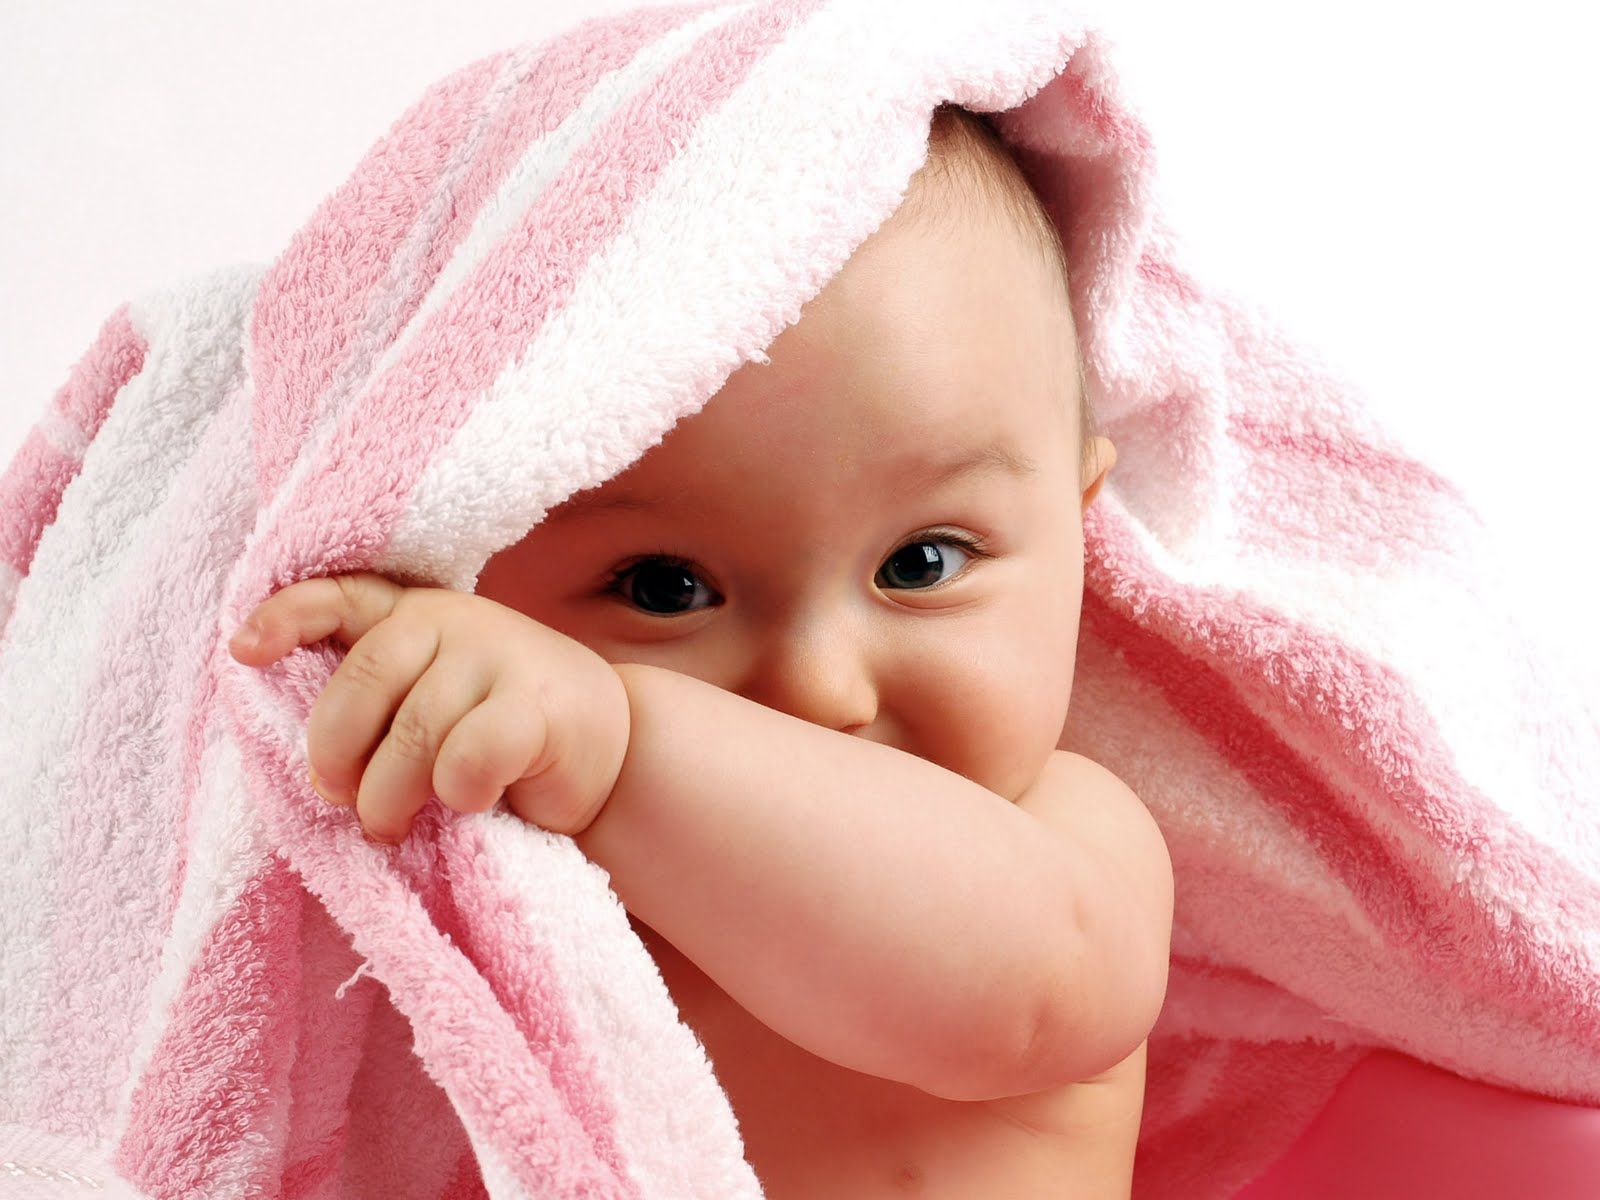 Cute babies tiptop 3d hd wallpapers collection - Baby background ...